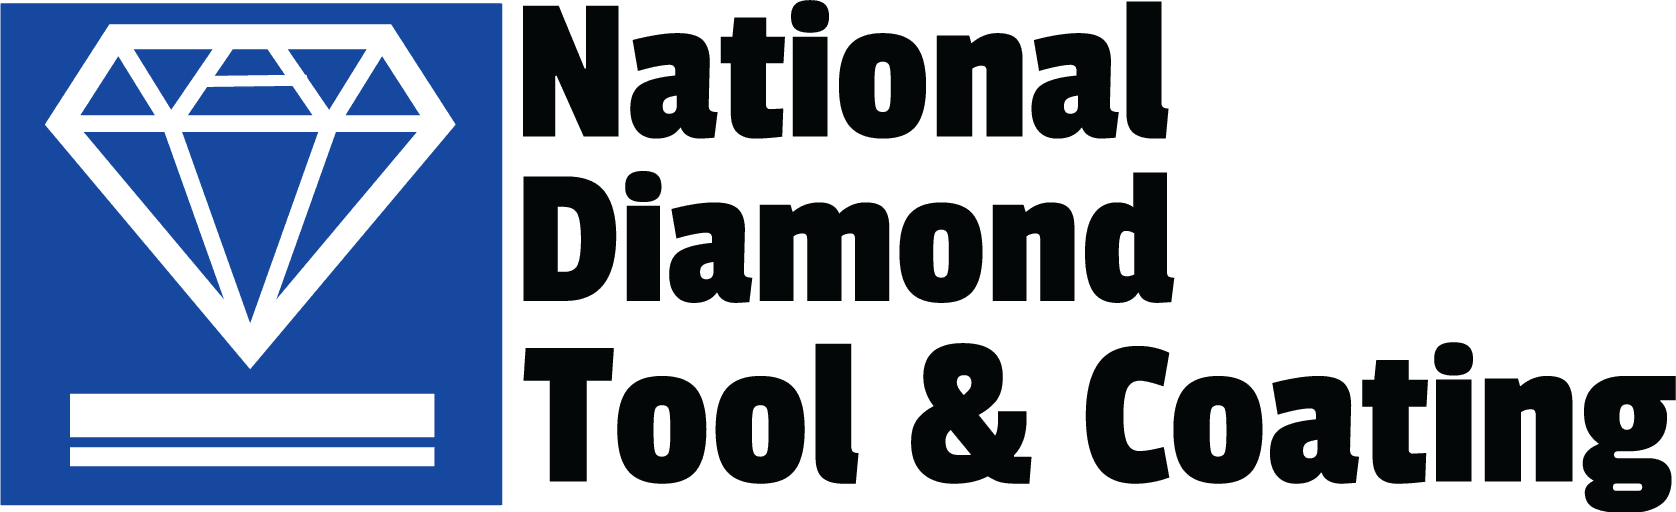 National Diamond Tool